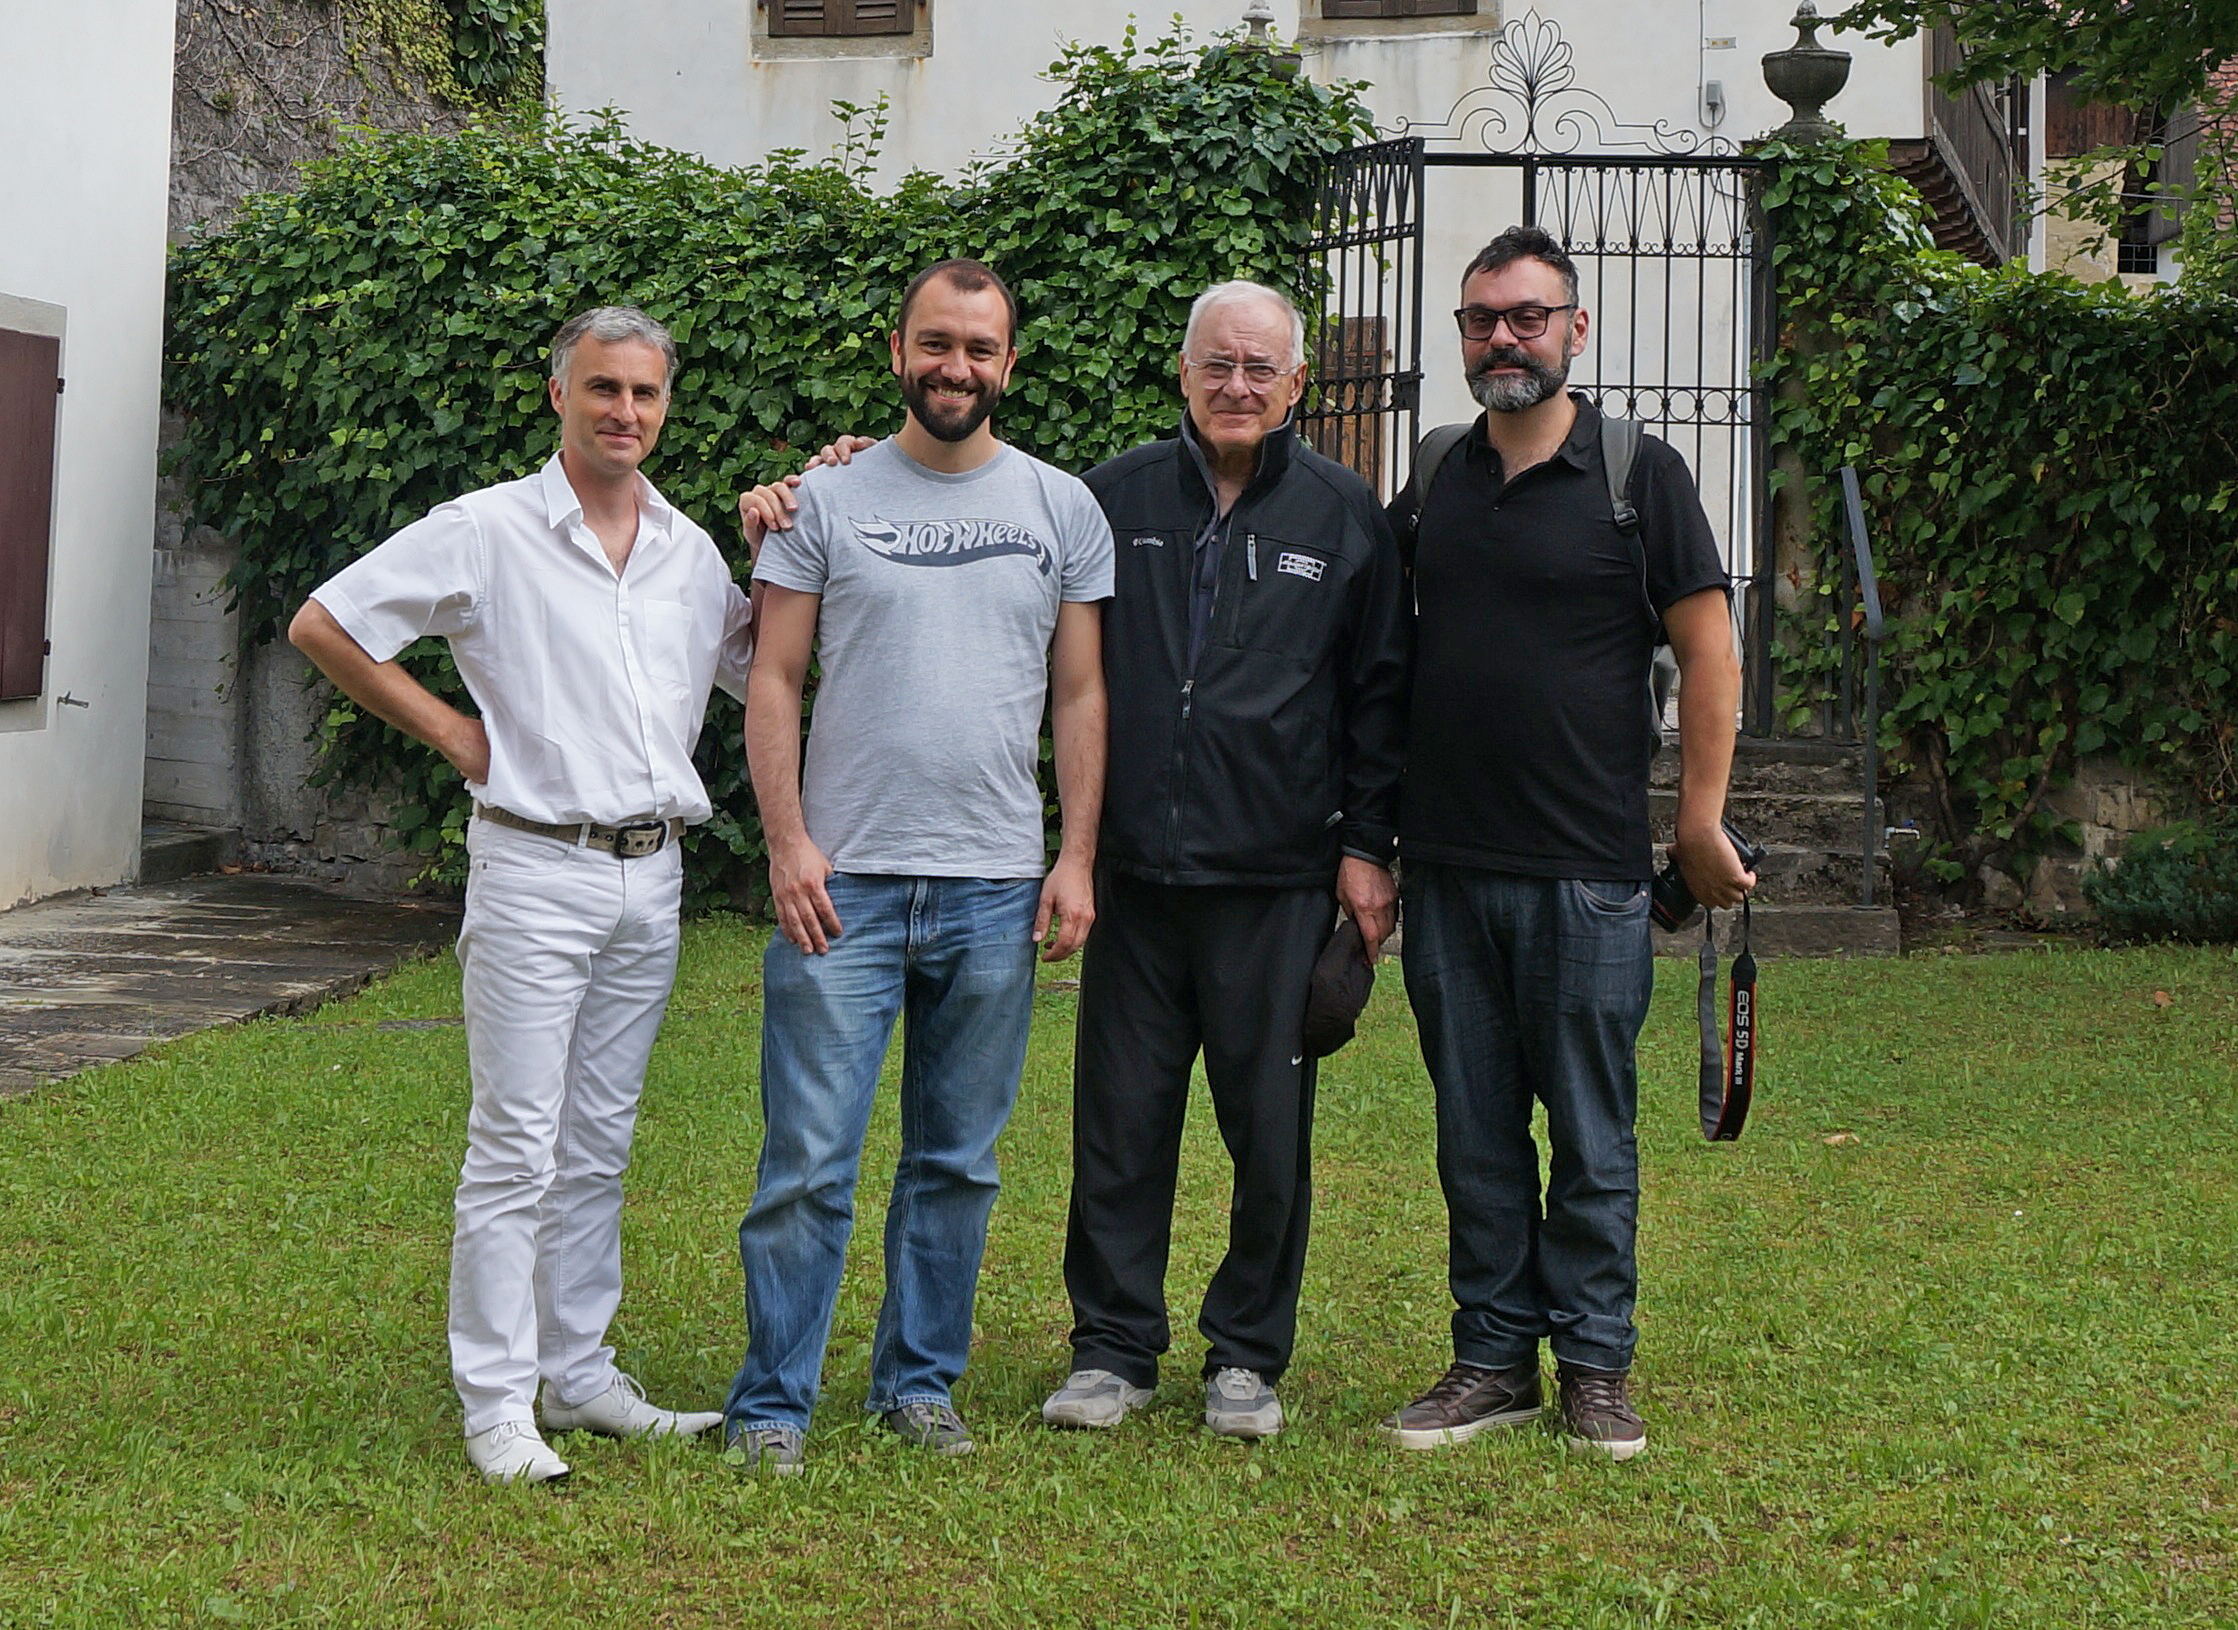 The production's first Italian crew, with Dante Spinotti, ASC, AIC (second from right). Photo Marcella Spinotti